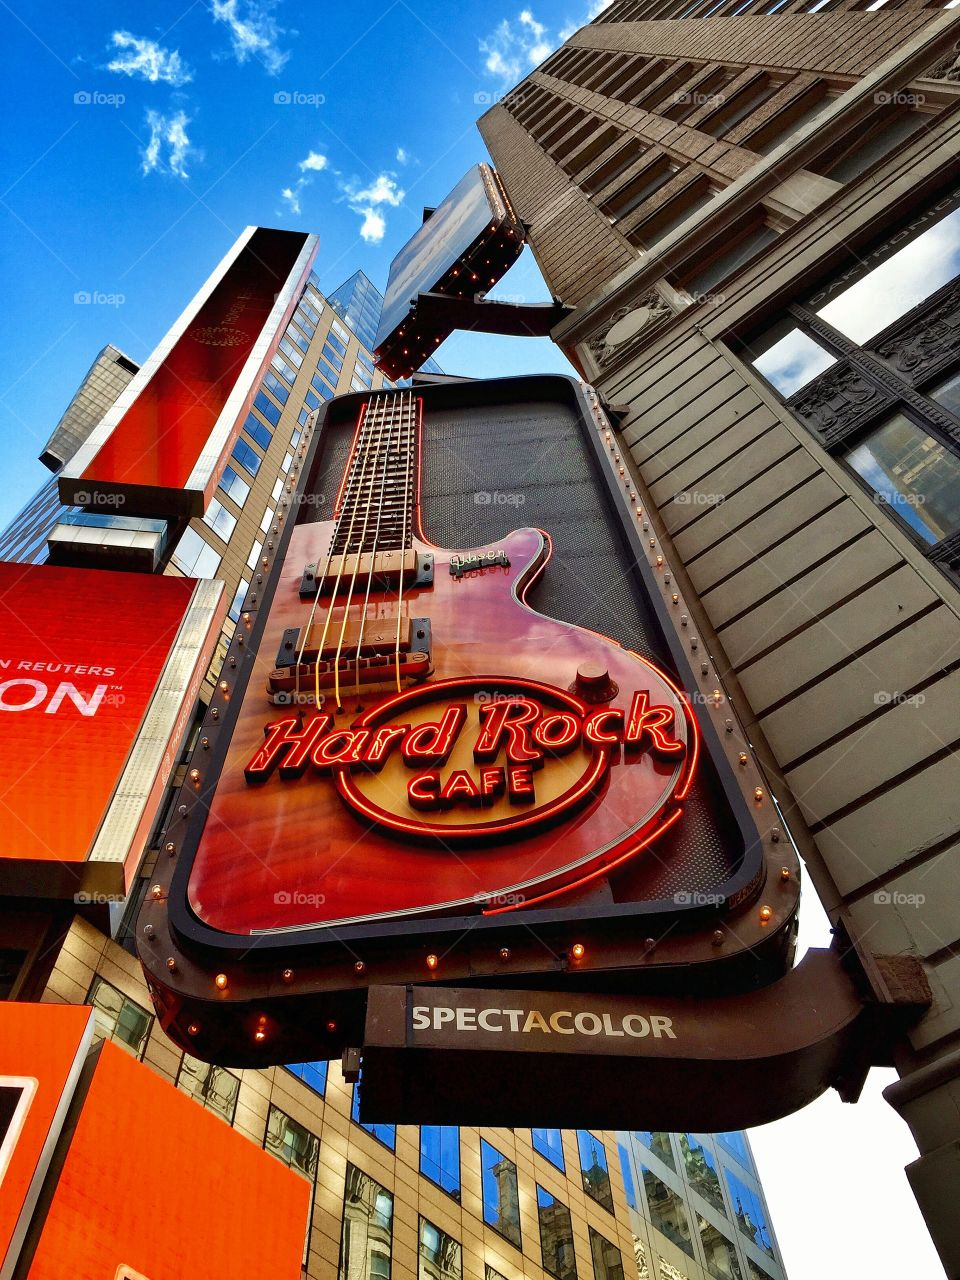 Times Square Hard Rock Cafe. Hard Rock Cafe, Times Square, New York City